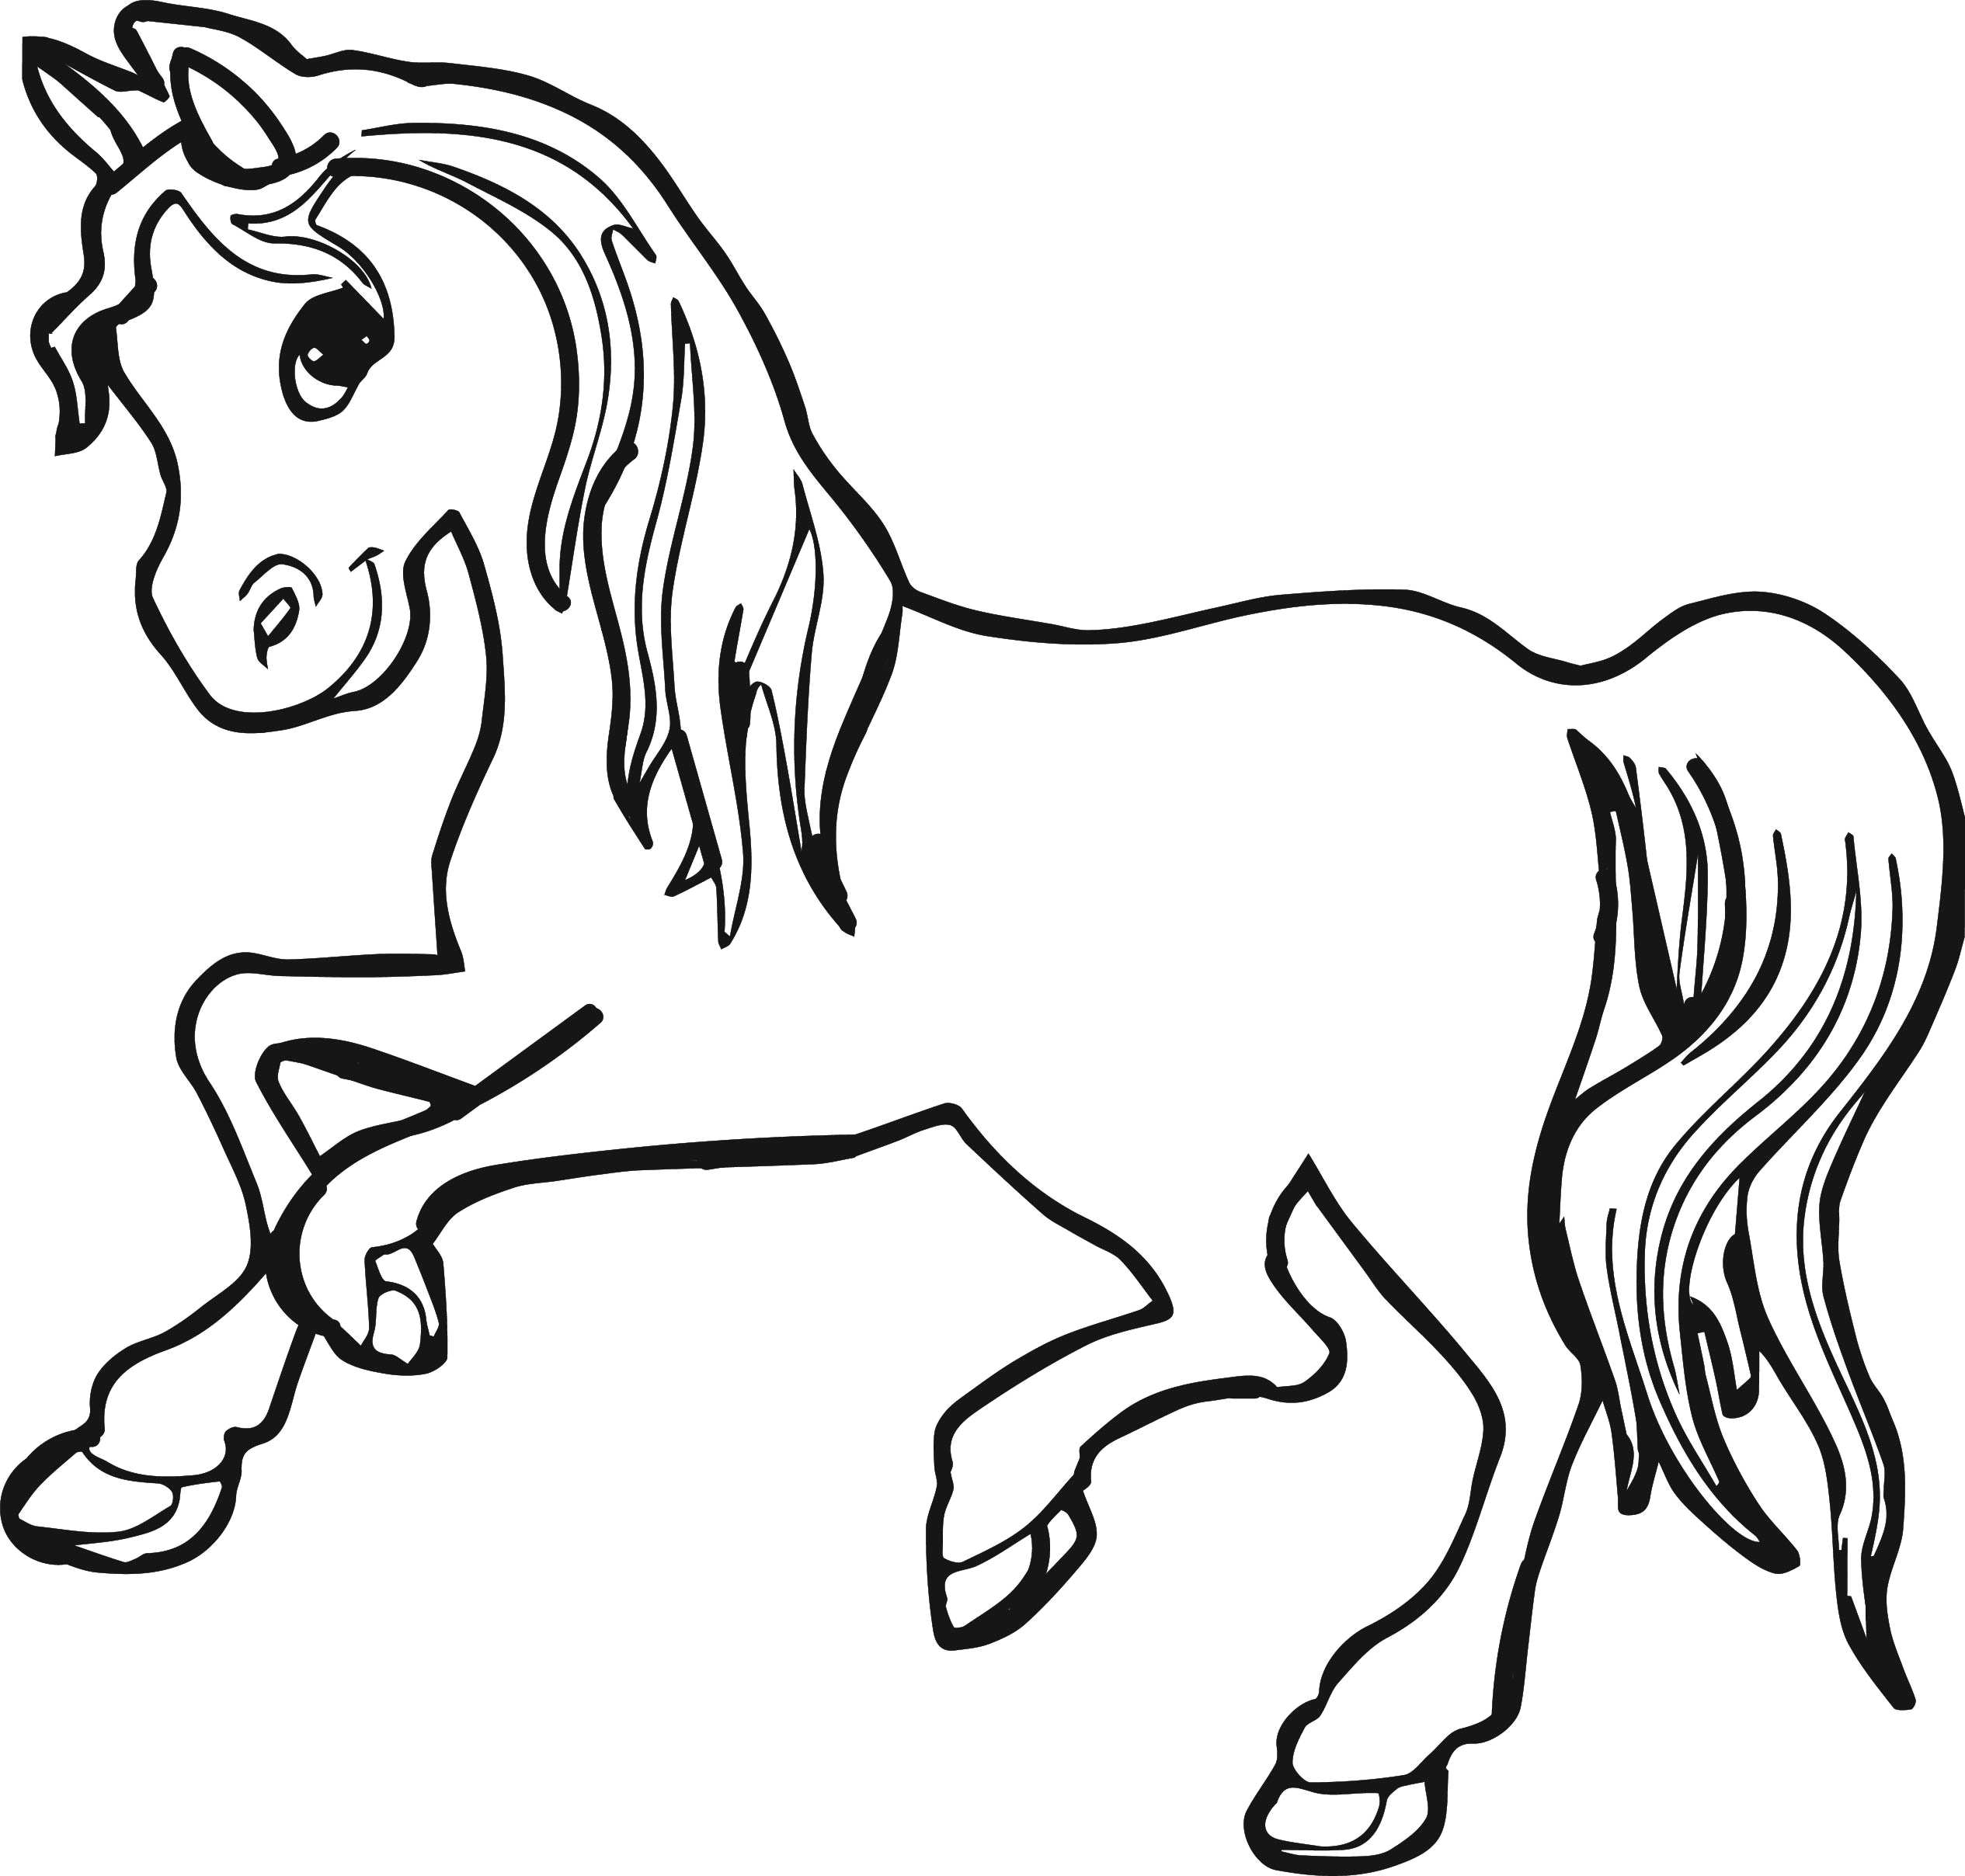 2530x2416 Animal Horse Outline Horse Painting Games Pichers Of Horses